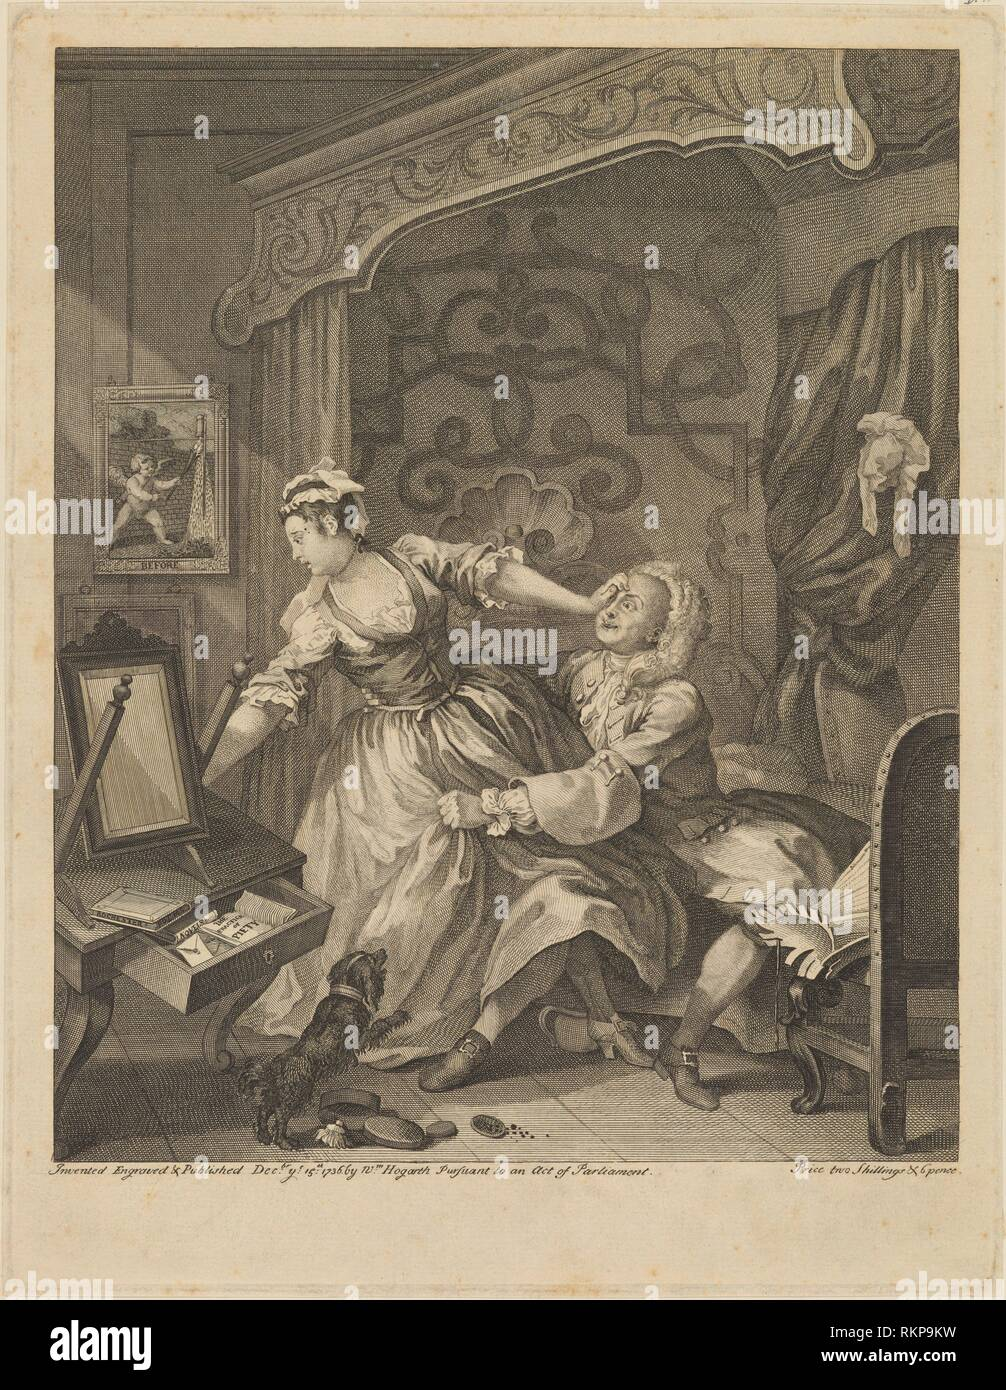 Before. Hogarth, William, 1697-1764 (Printmaker). William Hogarth: prints. Date Created: 1736. Prints. Still image. - Stock Image